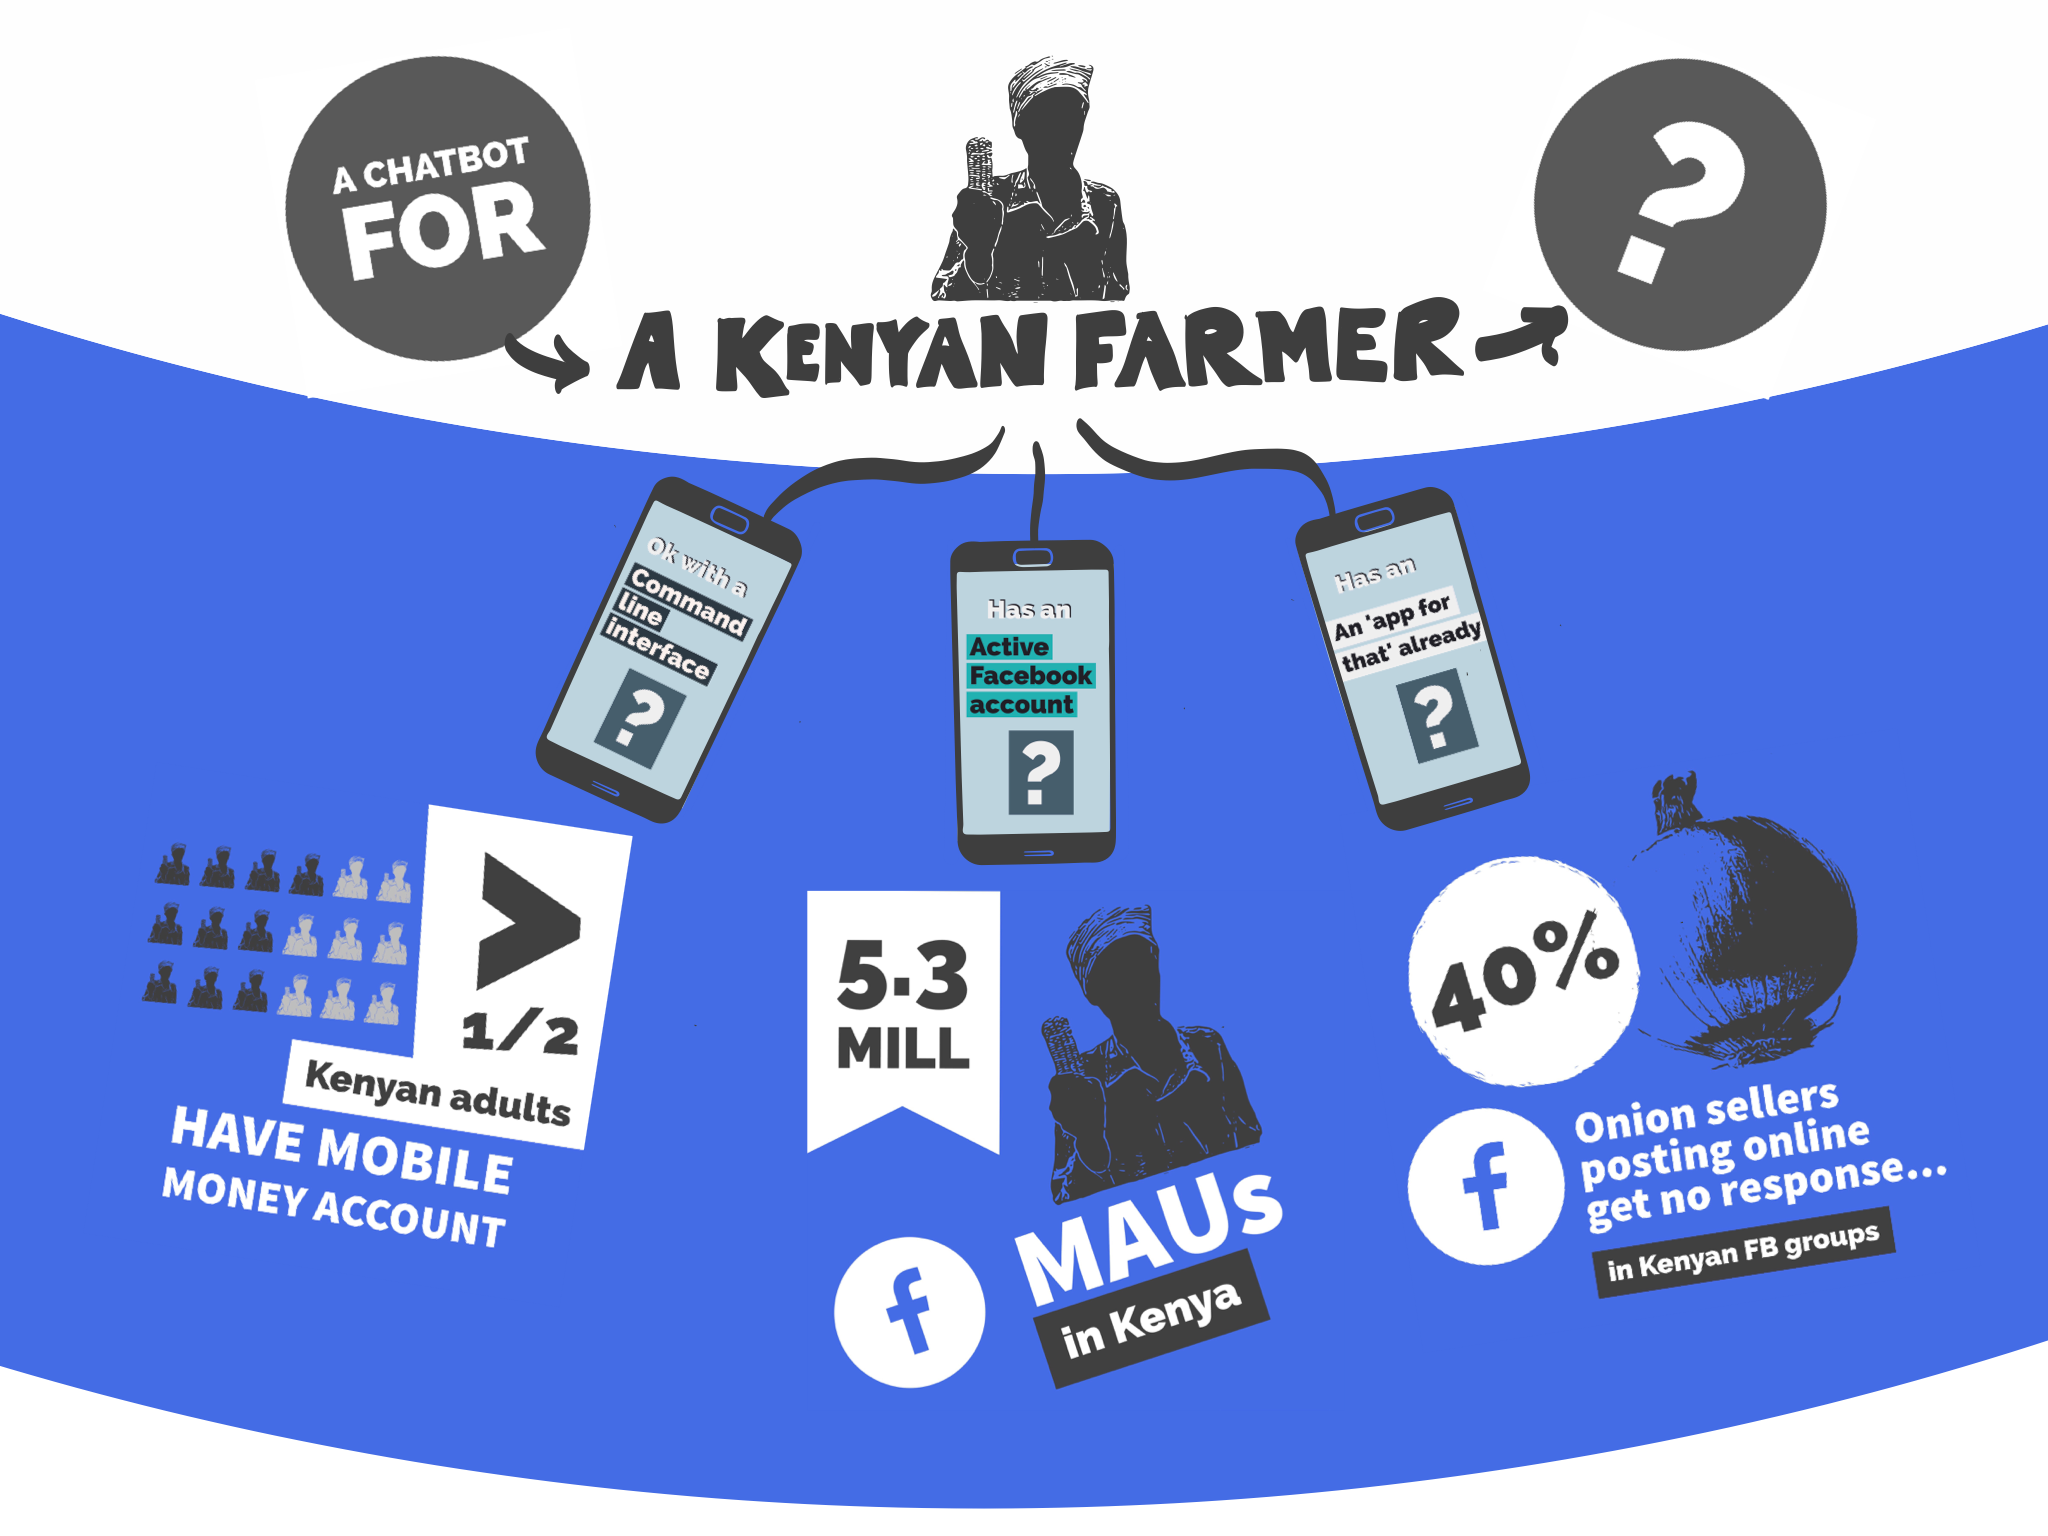 Why we think chatbots for farmers in Kenya isn't as stupid